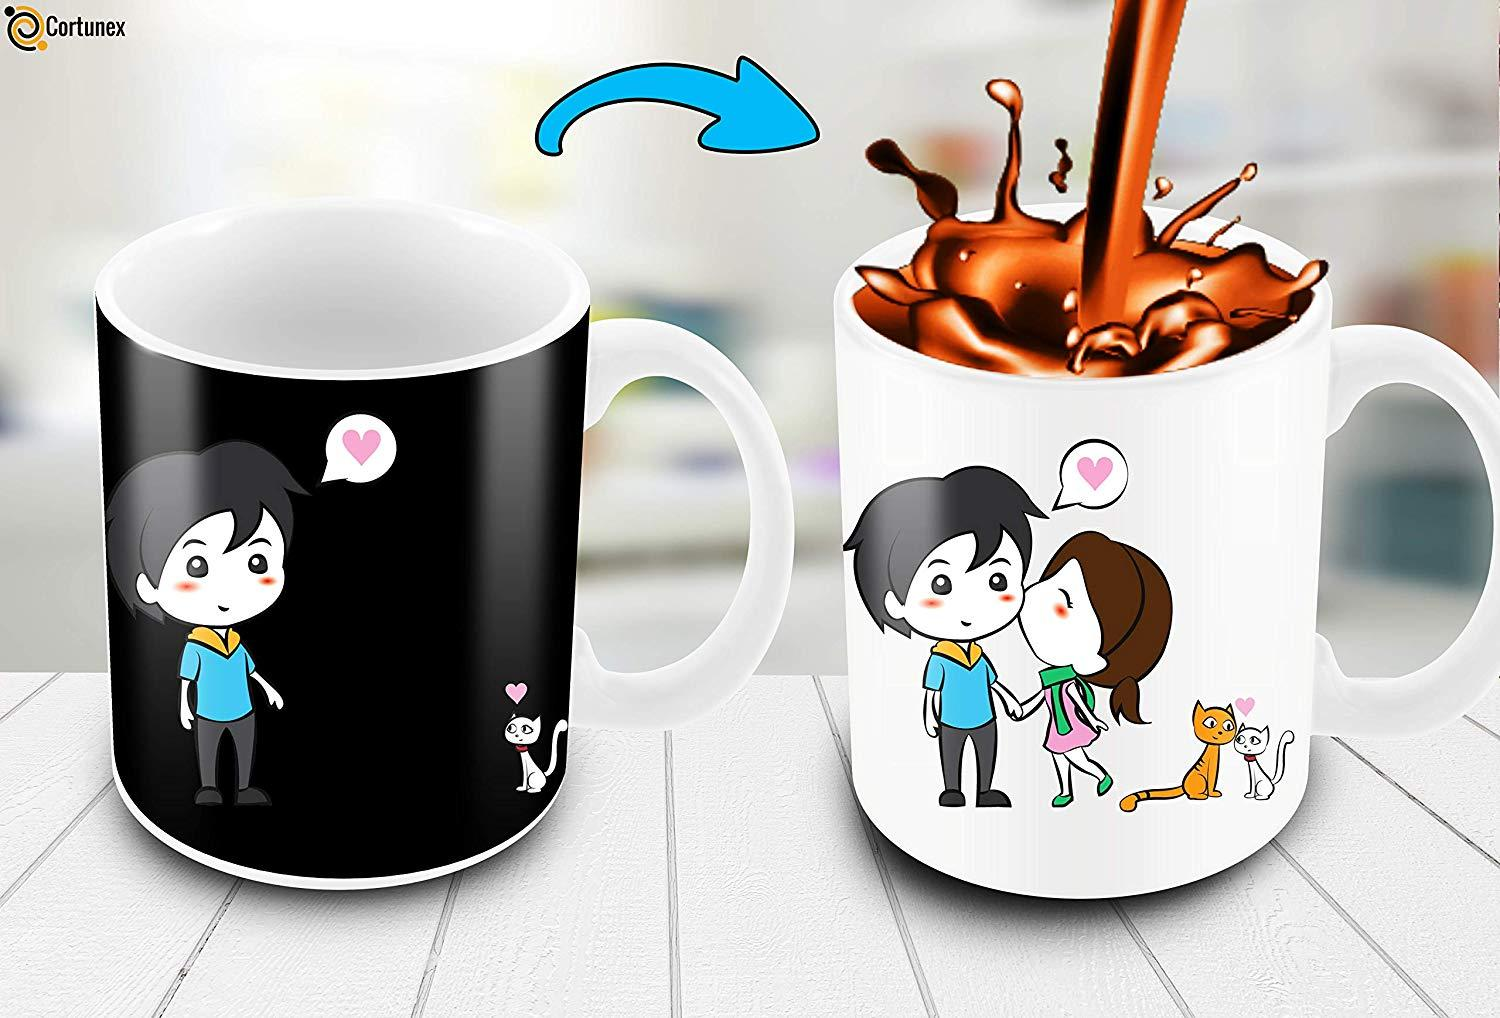 Heat Changing Mug With Lovely Cartoon Couples And Cute Cats Color Changing Coffee Mug Funny Cute Mug For Woman Custom Thermal Mugs Custom Travel Coffee Mugs From Cccofficialstore 9 05 Dhgate Com